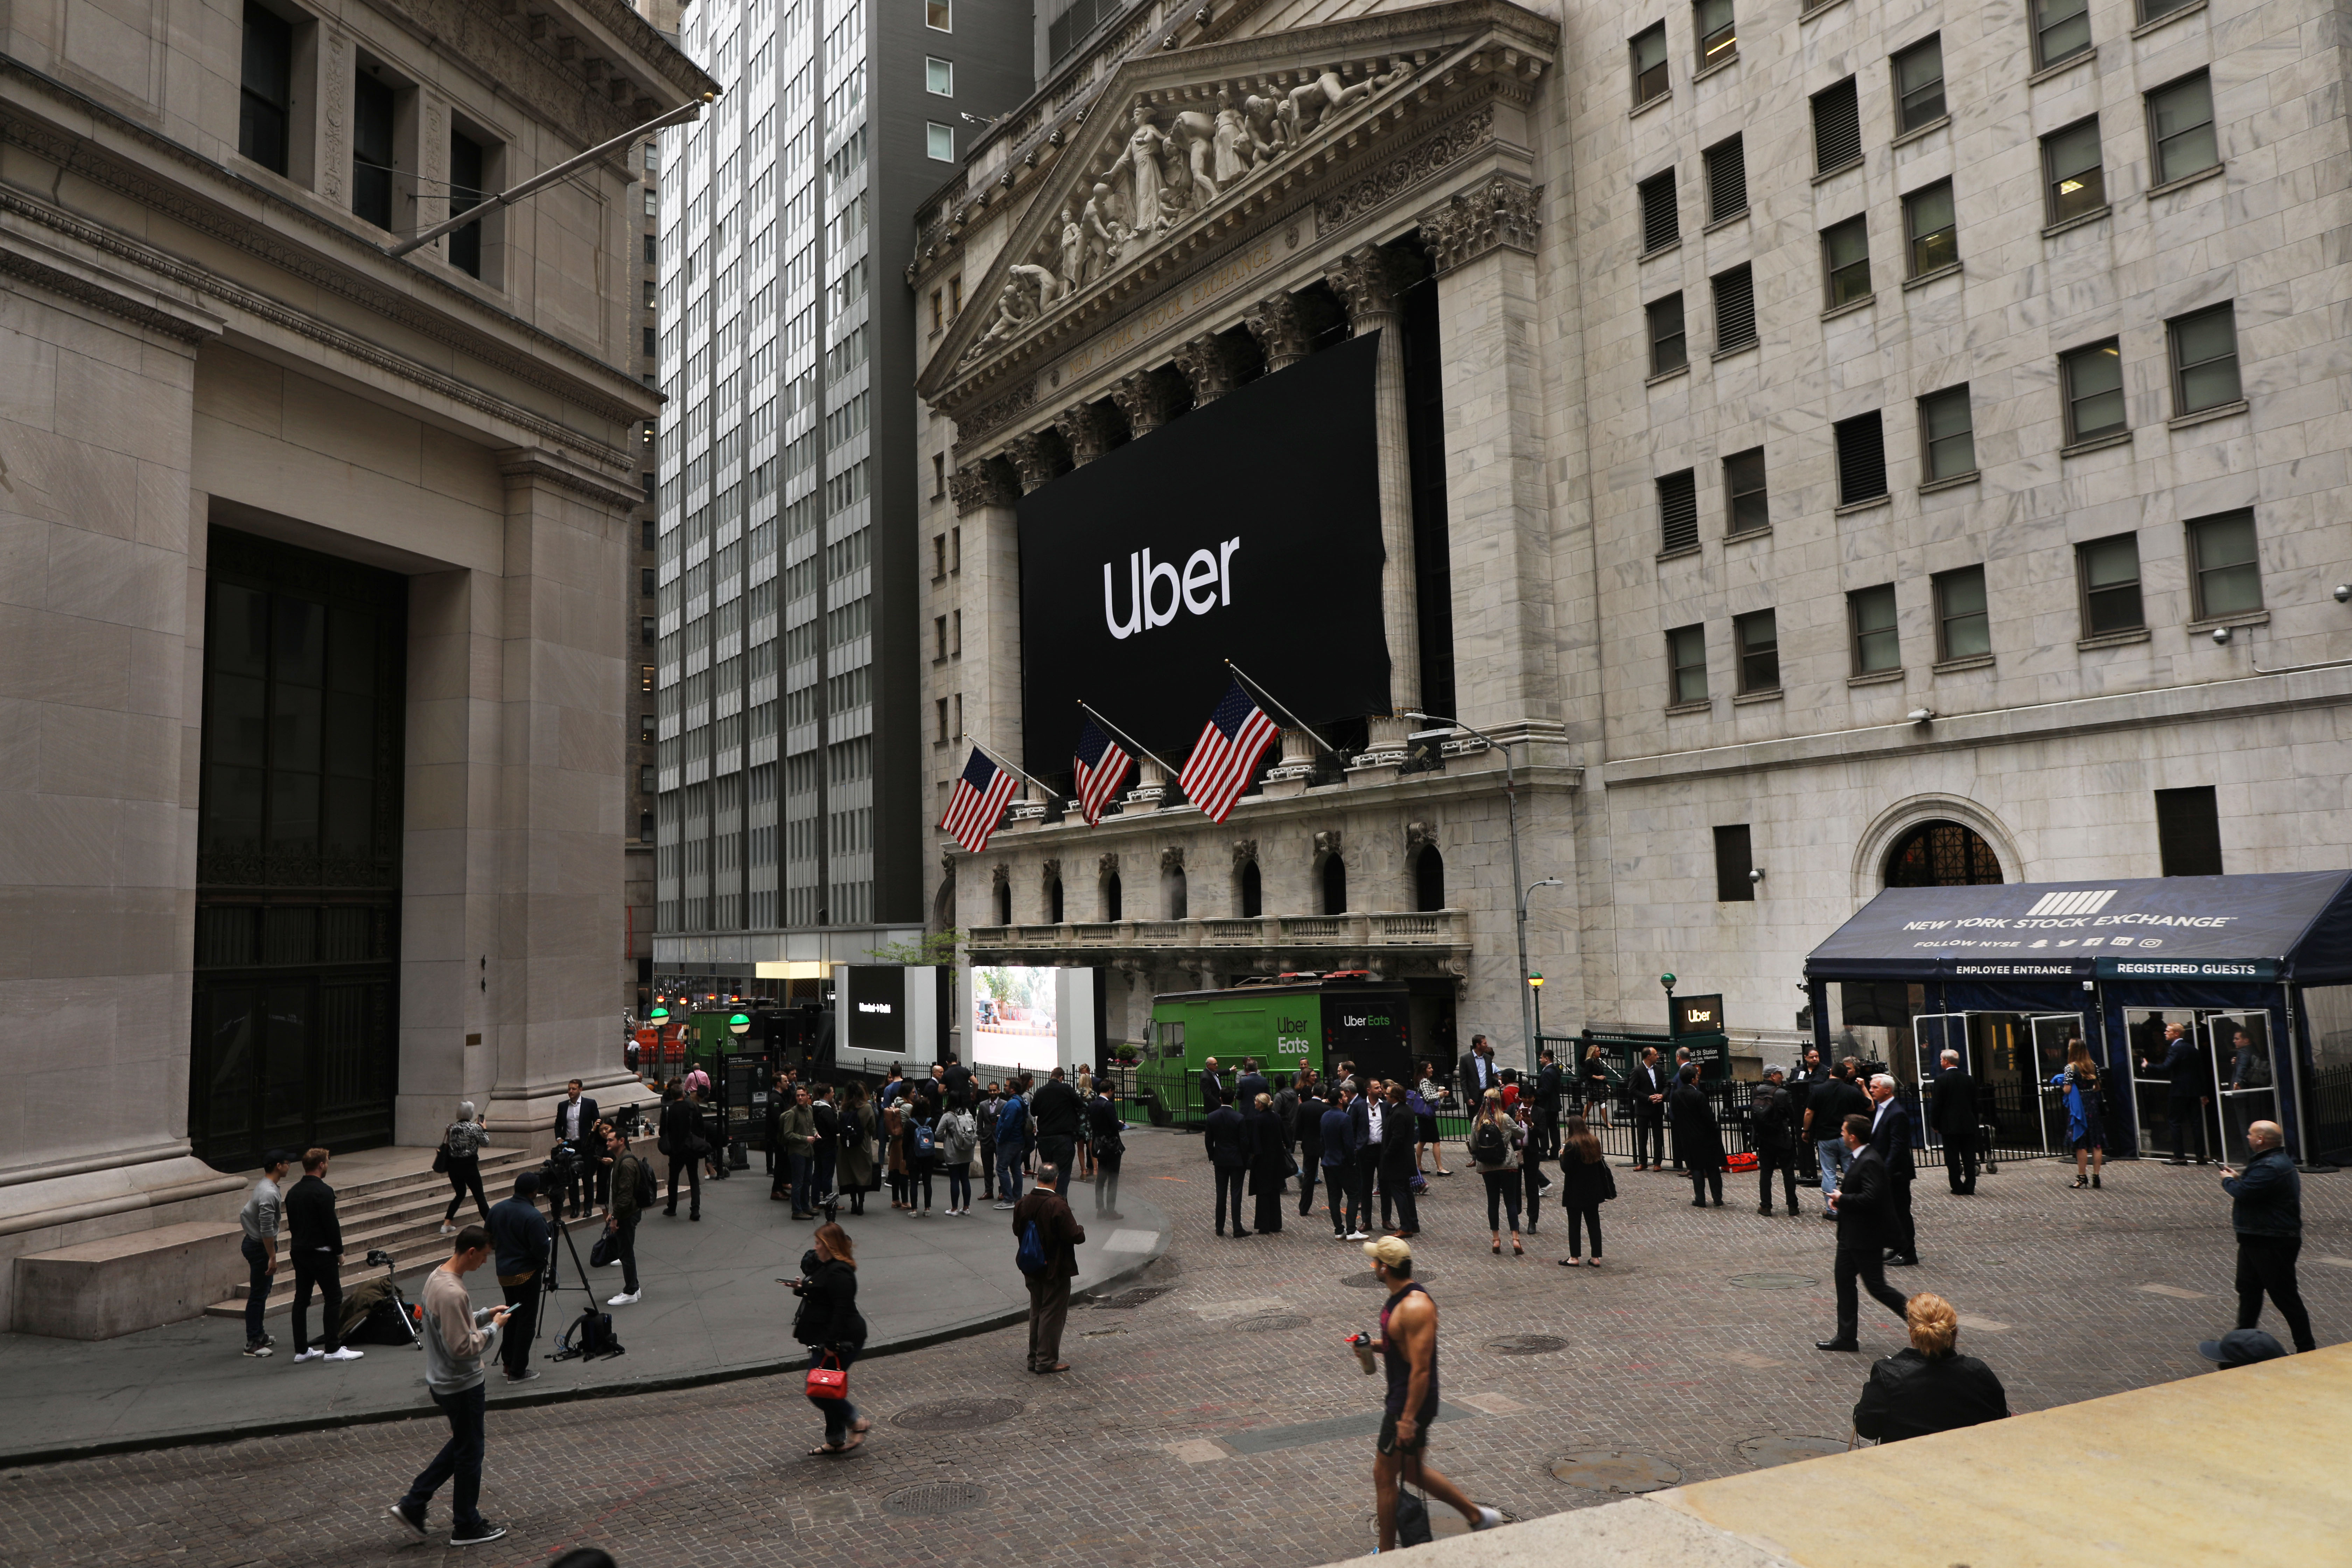 The Uber banner hangs outside of the New York Stock Exchange (NYSE) before the Opening Bell at the NYSE as the ride-hailing company Uber makes its highly anticipated initial public offering (IPO) on May 10, 2019 in New York City. (Photo by Spencer Platt/Getty Images)